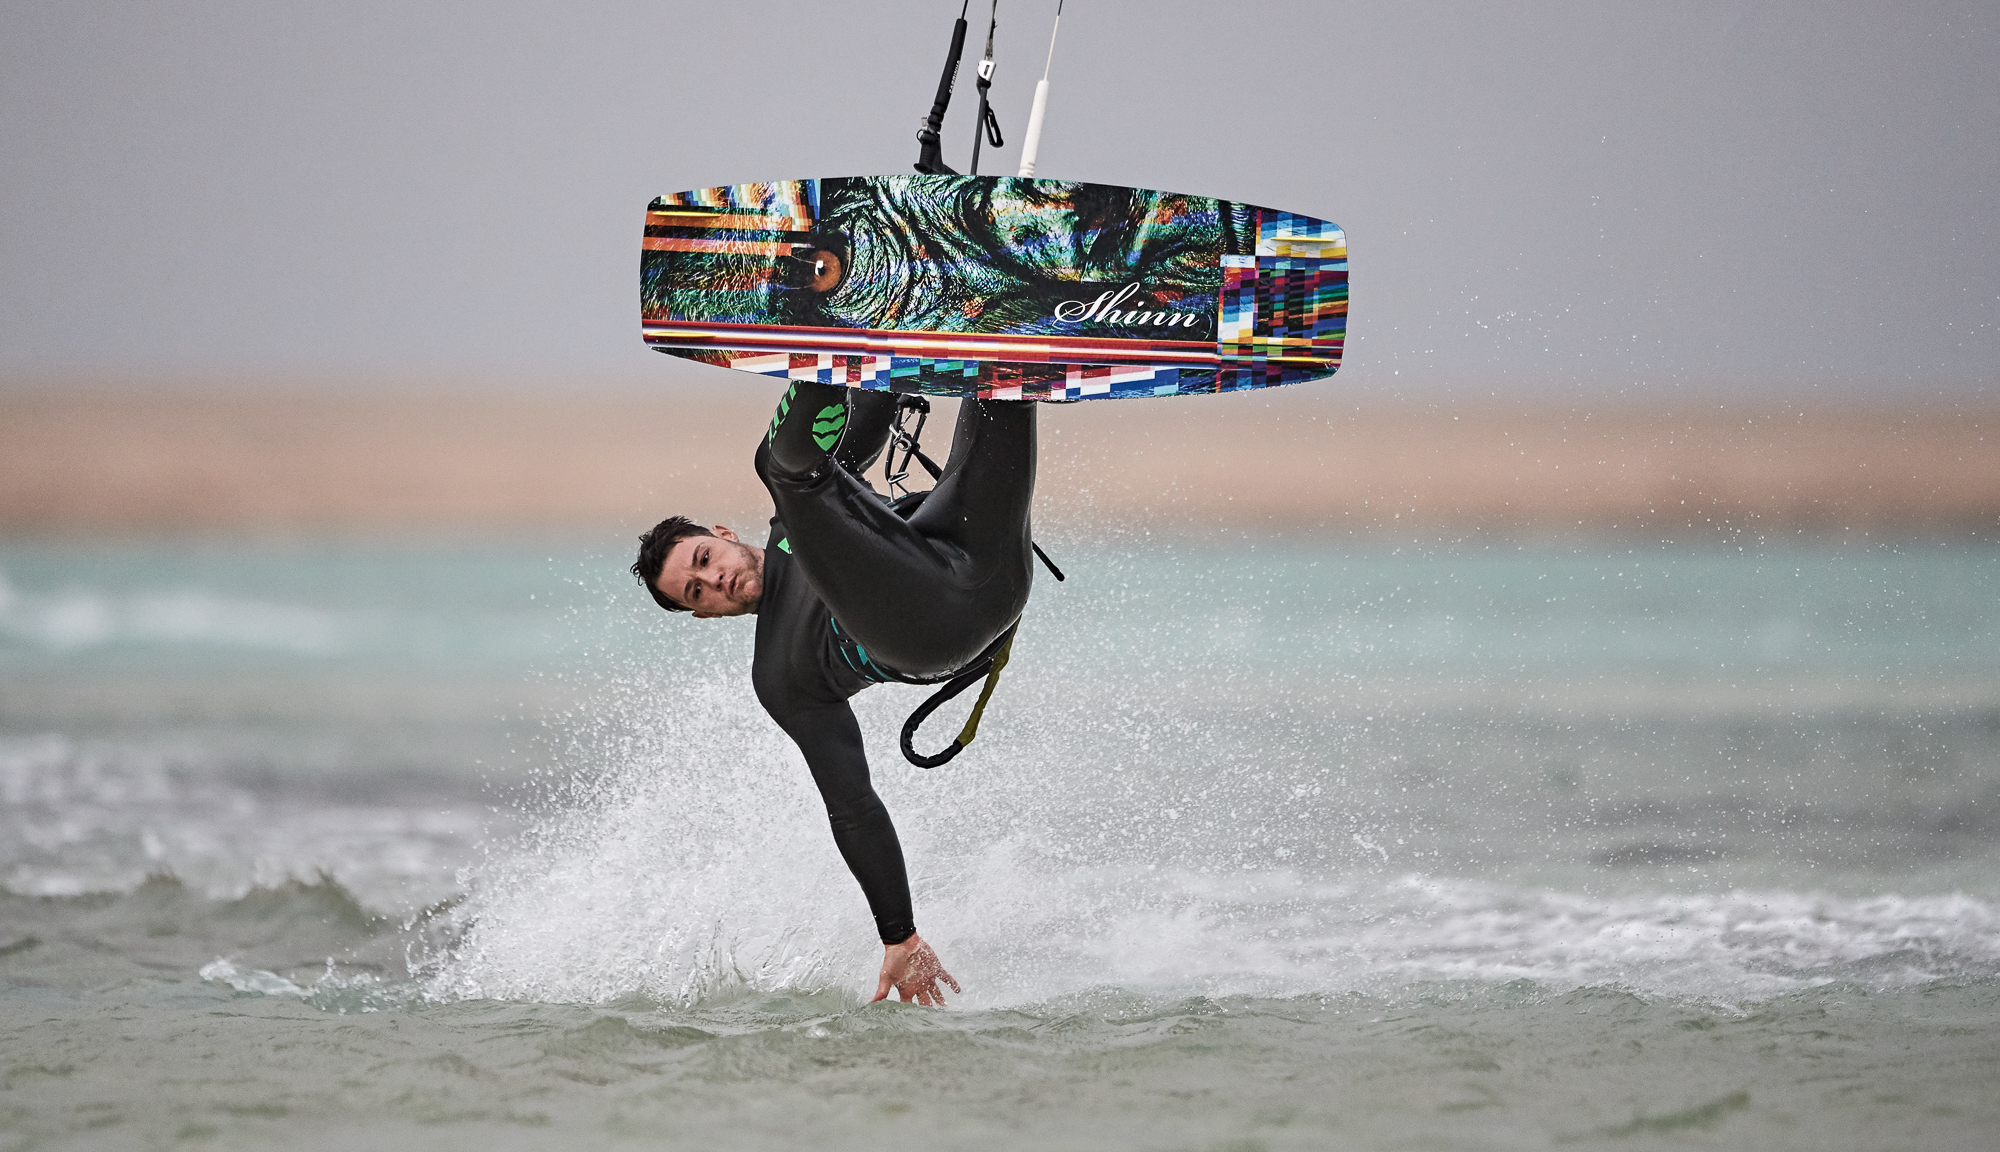 Kiteboard Shinn MONK GLITCH (132až137cm) freeride